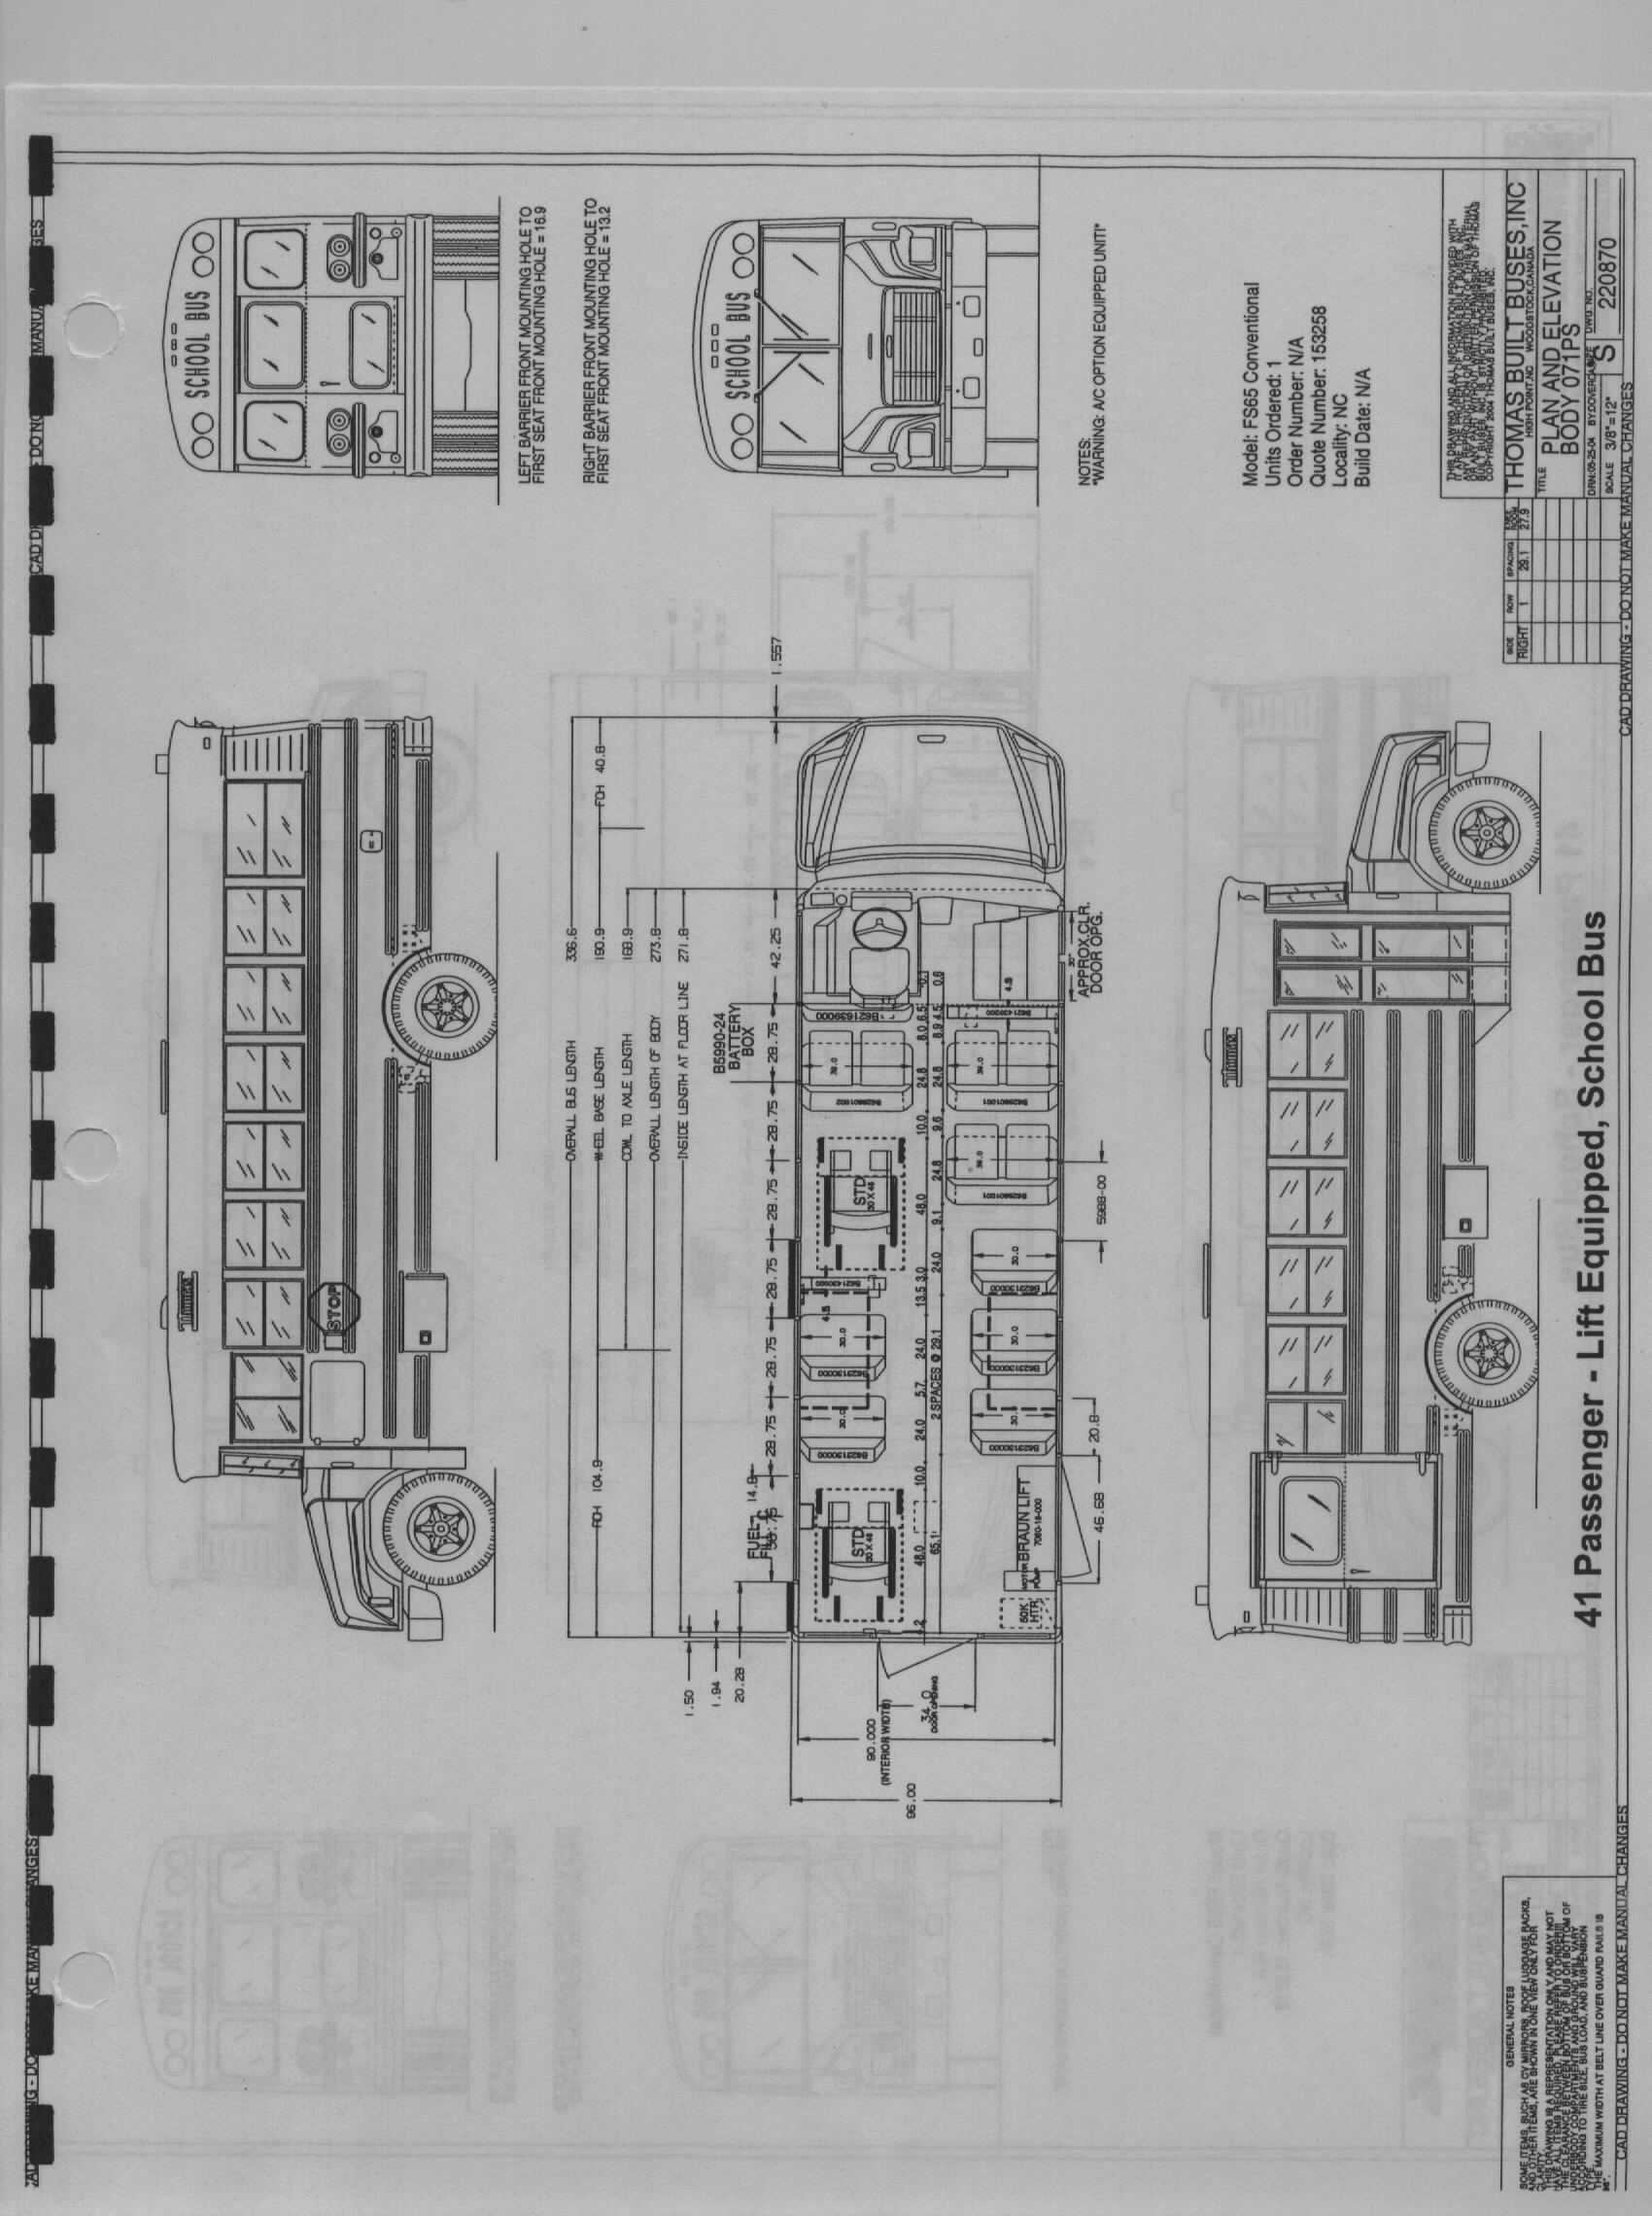 [QNCB_7524]  DIAGRAM] 1999 Thomas Bus Wiring Diagram FULL Version HD Quality Wiring  Diagram - ASPOSEDIAGRAM.AGORASUP.FR | Ic Bus Wiring Diagram |  | Agora Sup